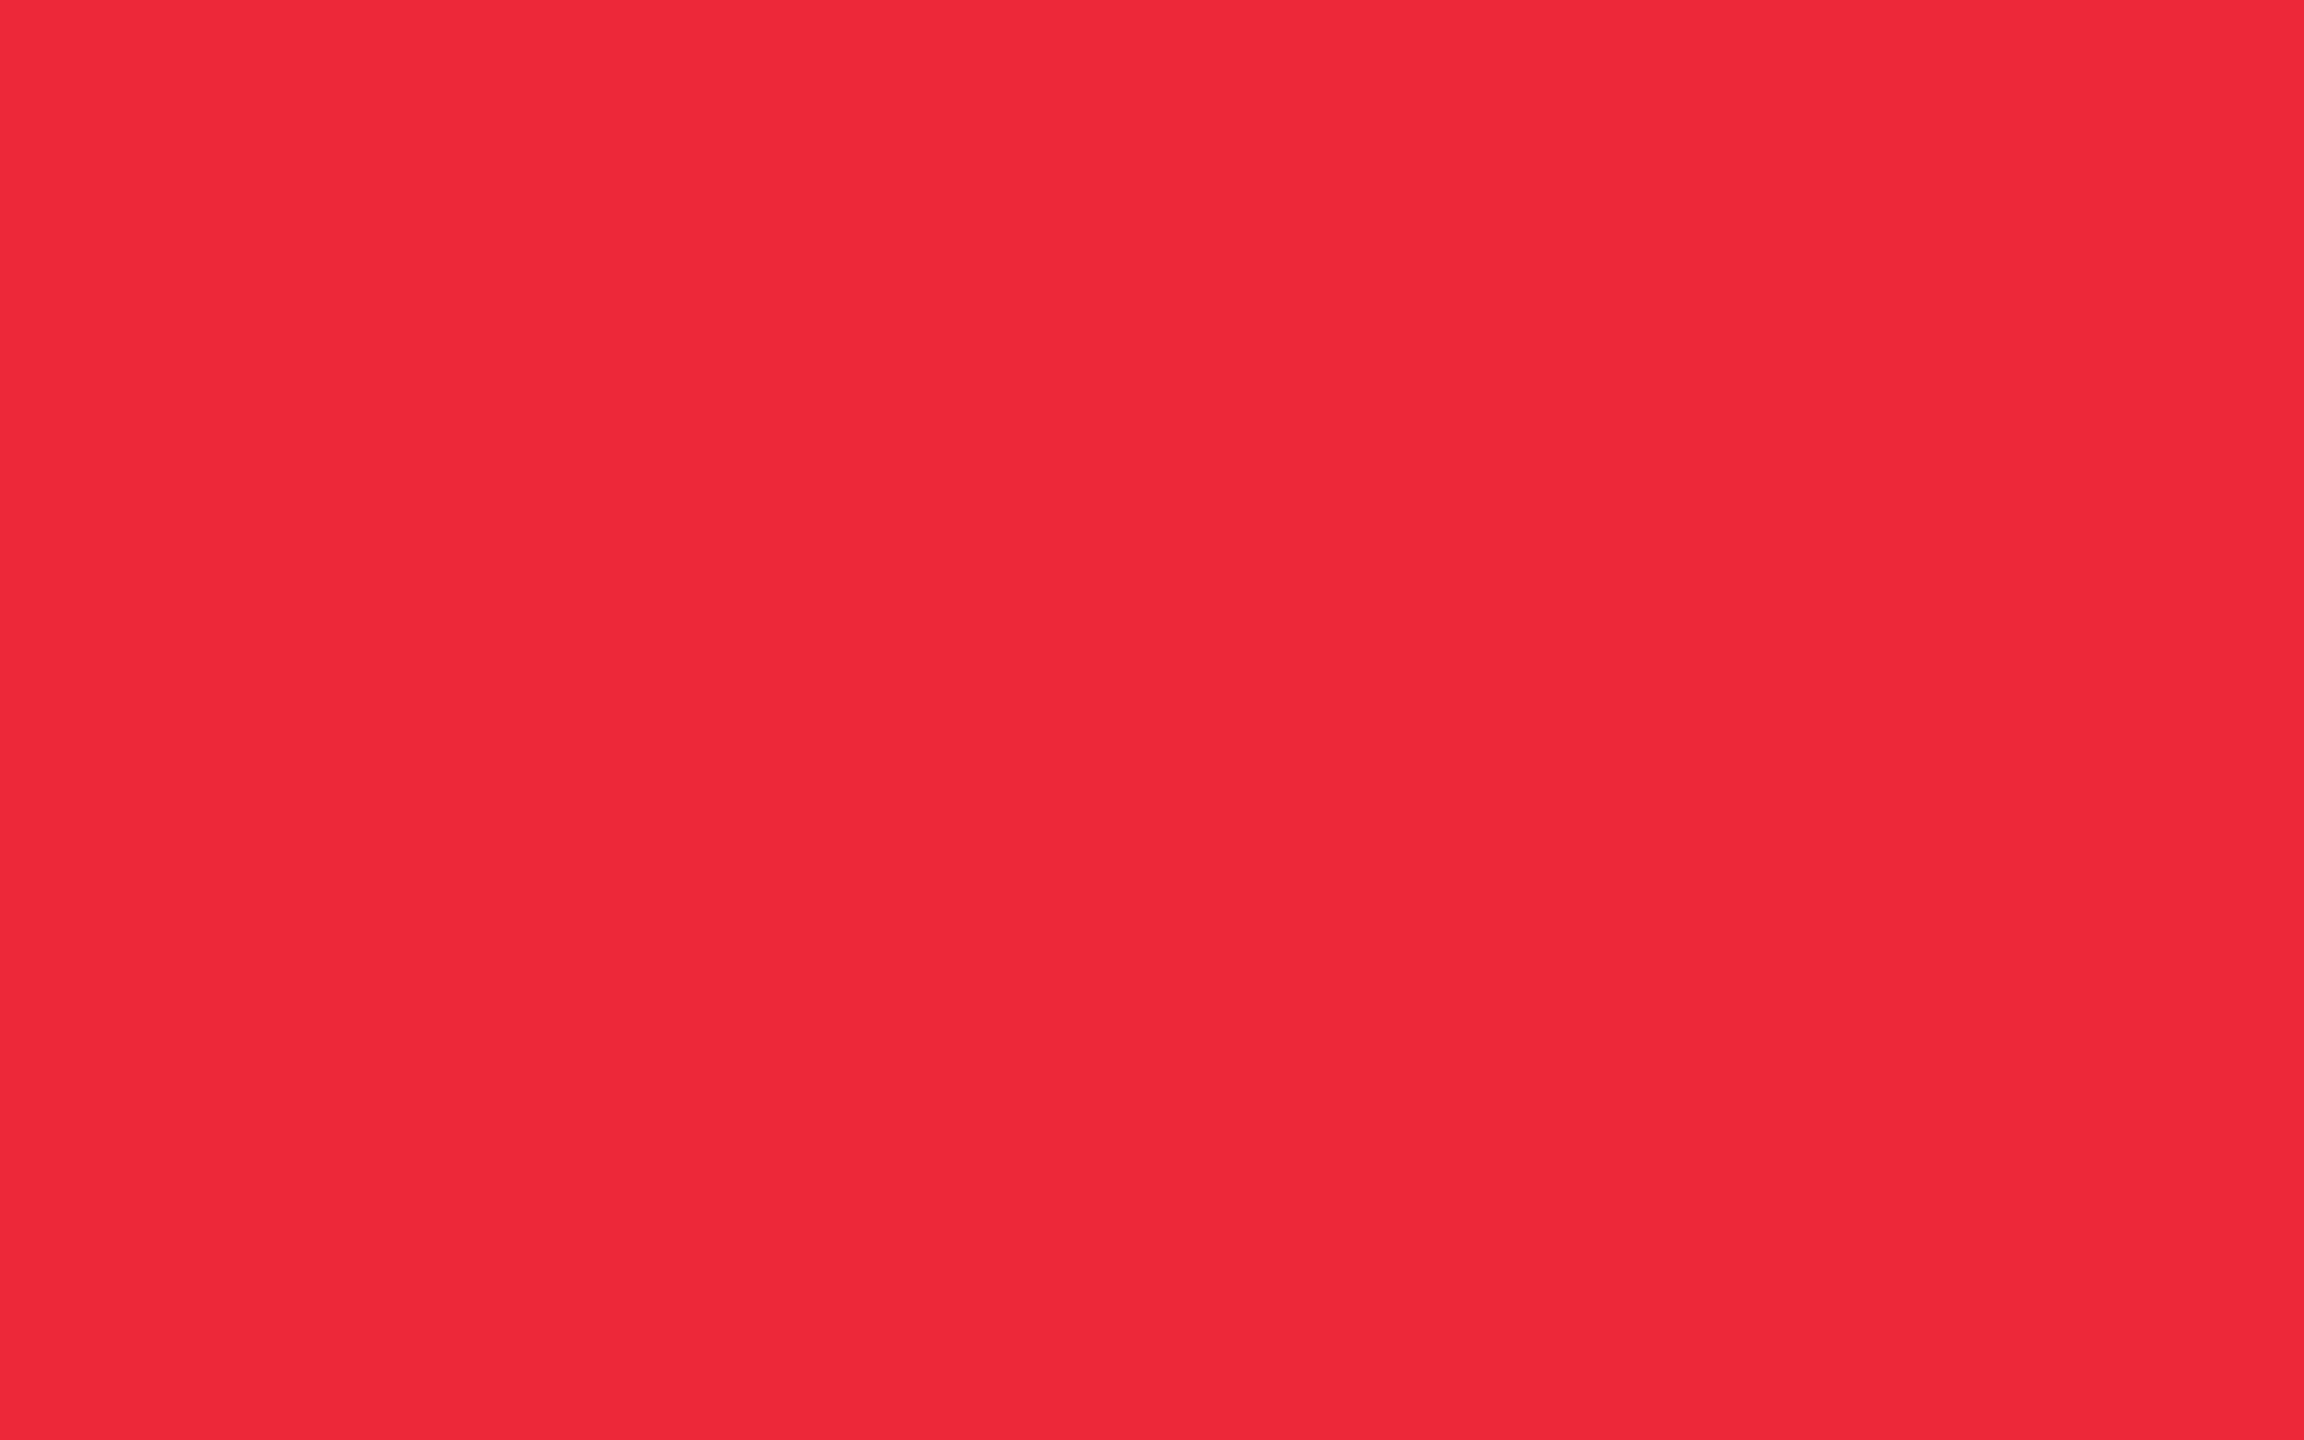 2304x1440 Red Pantone Solid Color Background